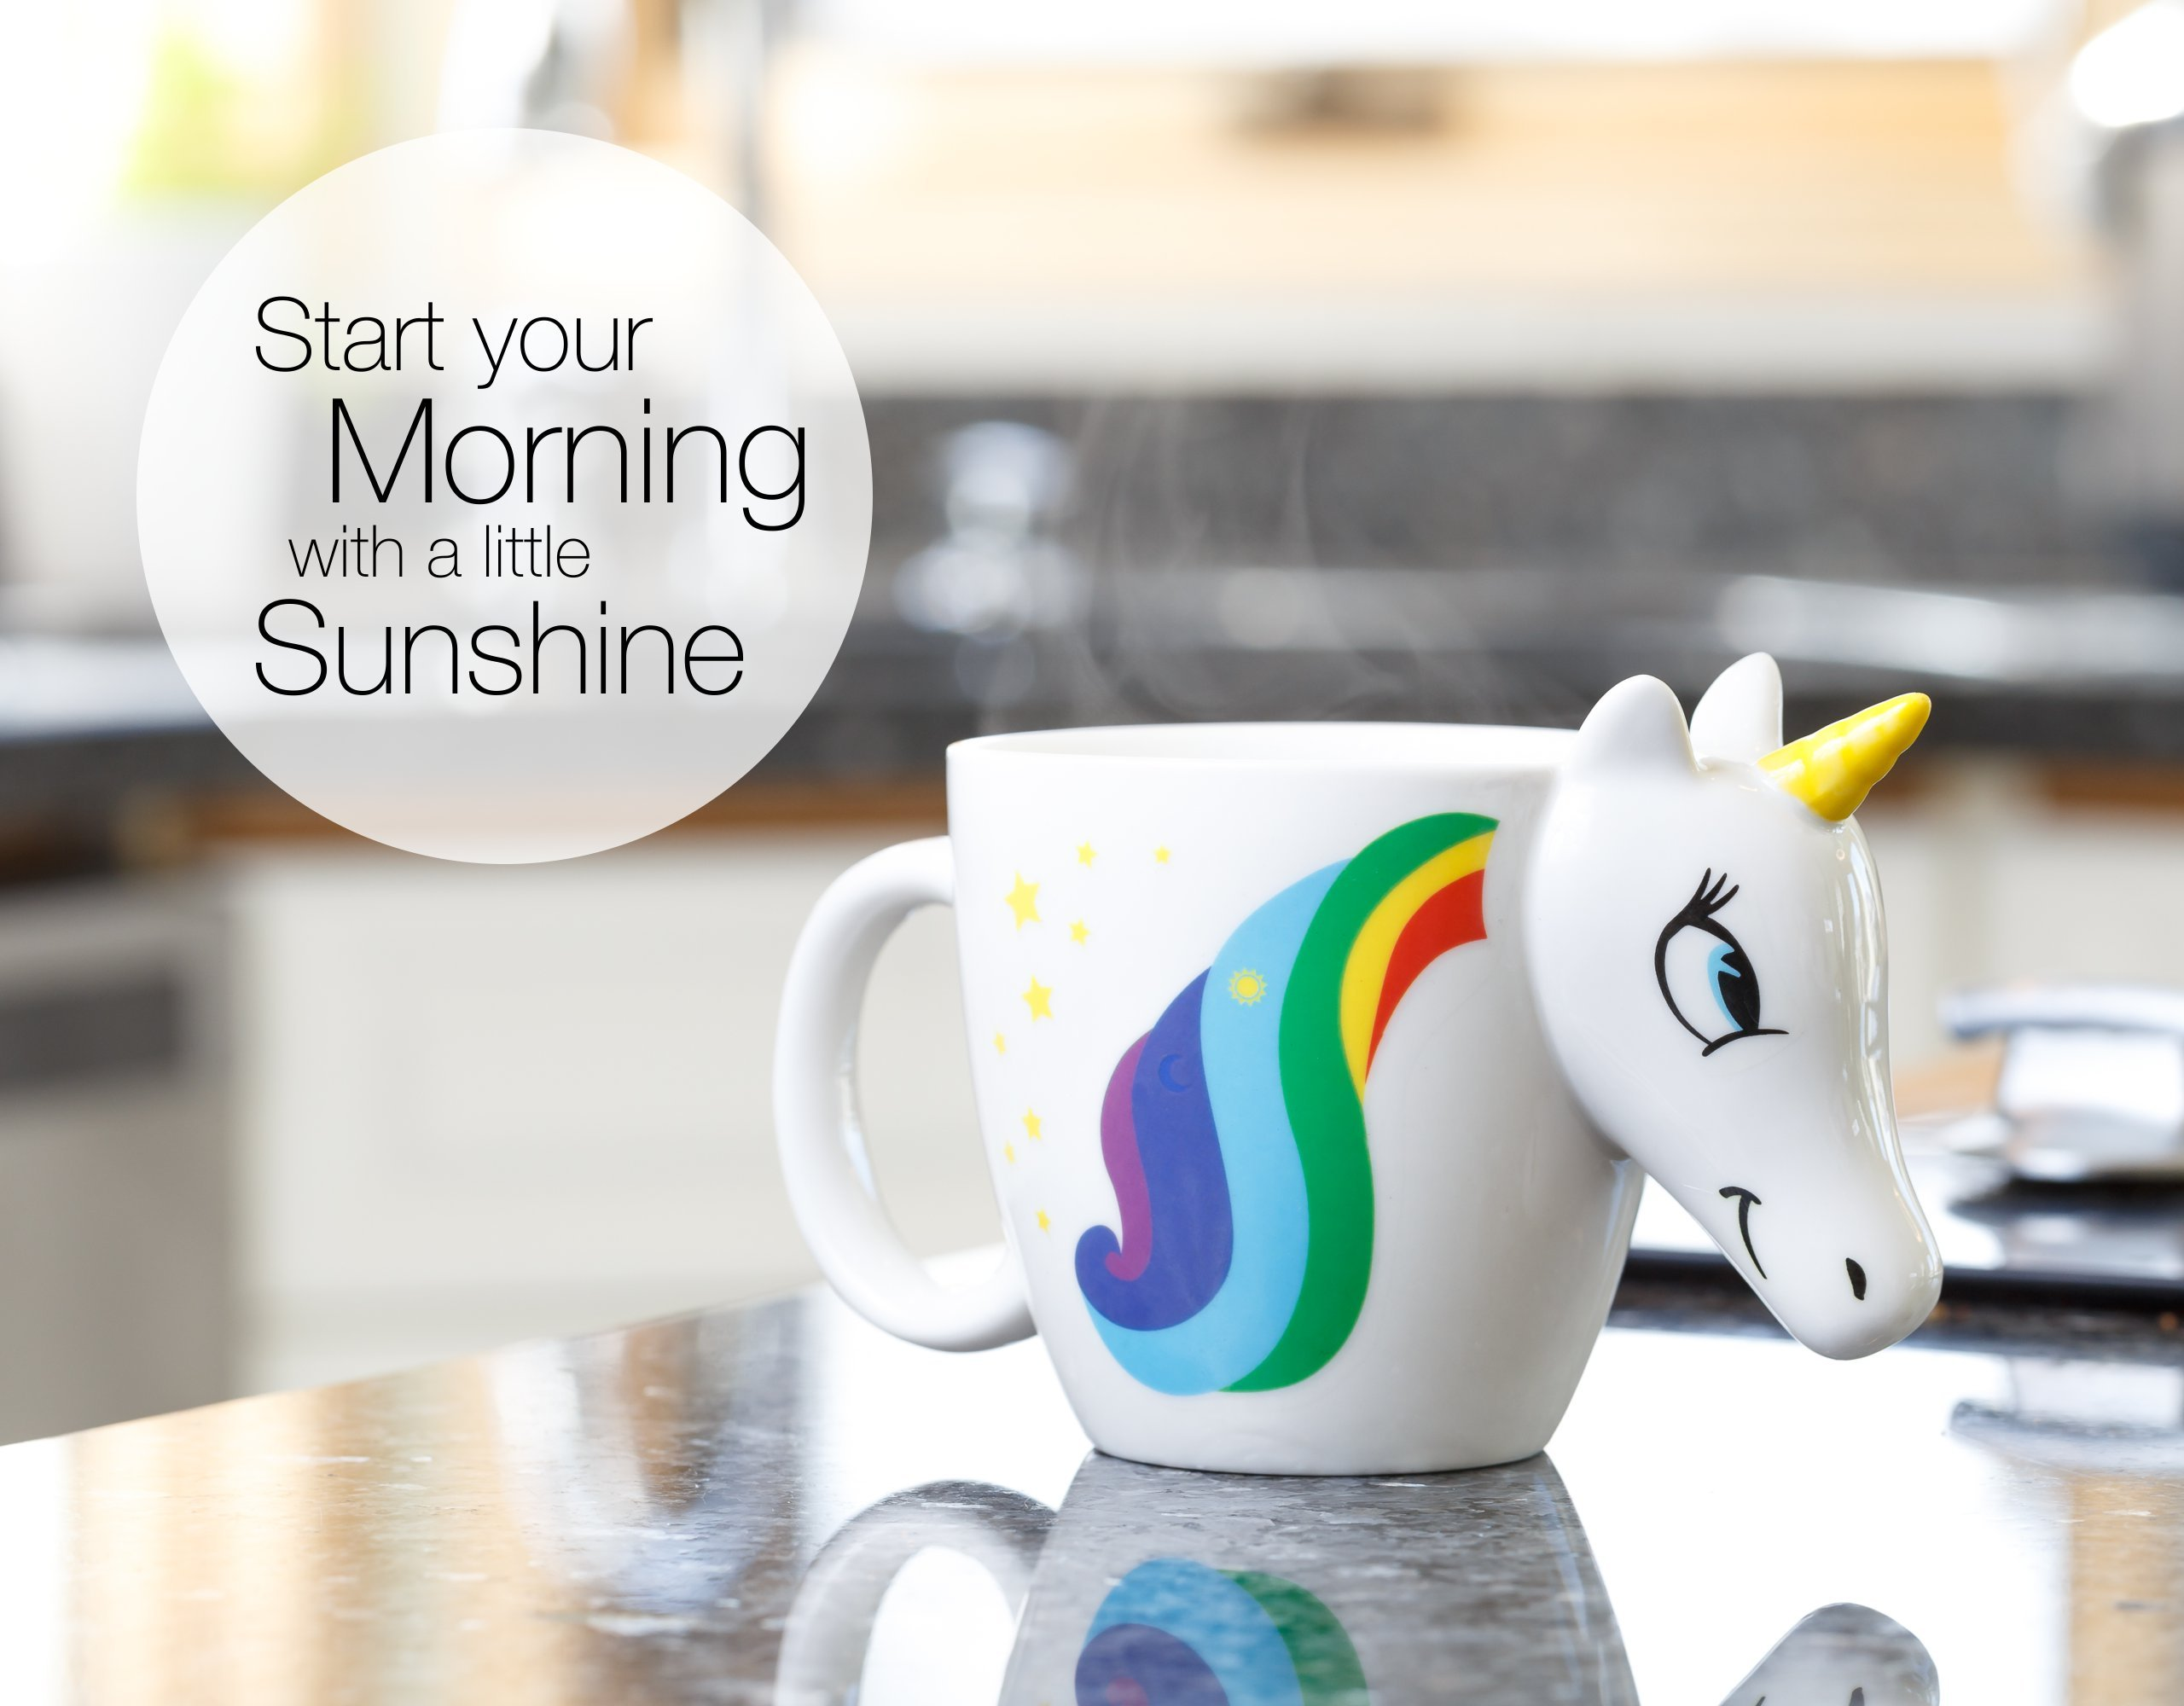 Color Changing Unicorn Mug - 3D Coffee Mugs Rainbow Design, Your morning cup of coffee or tea will never be the same… 9